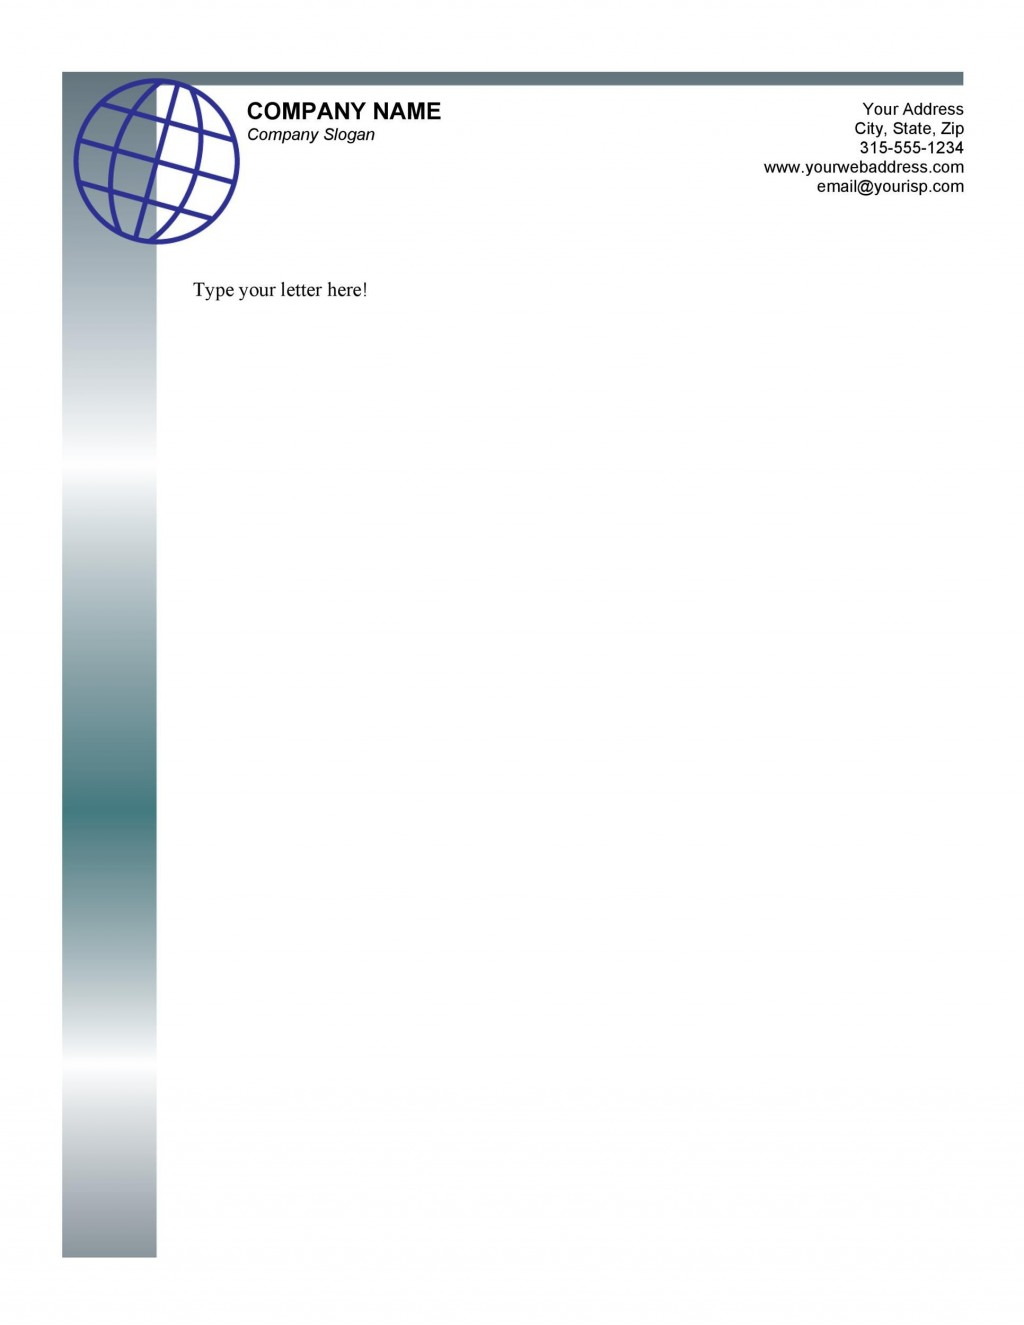 008 Staggering Free Company Letterhead Template Highest Quality  Online Psd Download Word 2007Large